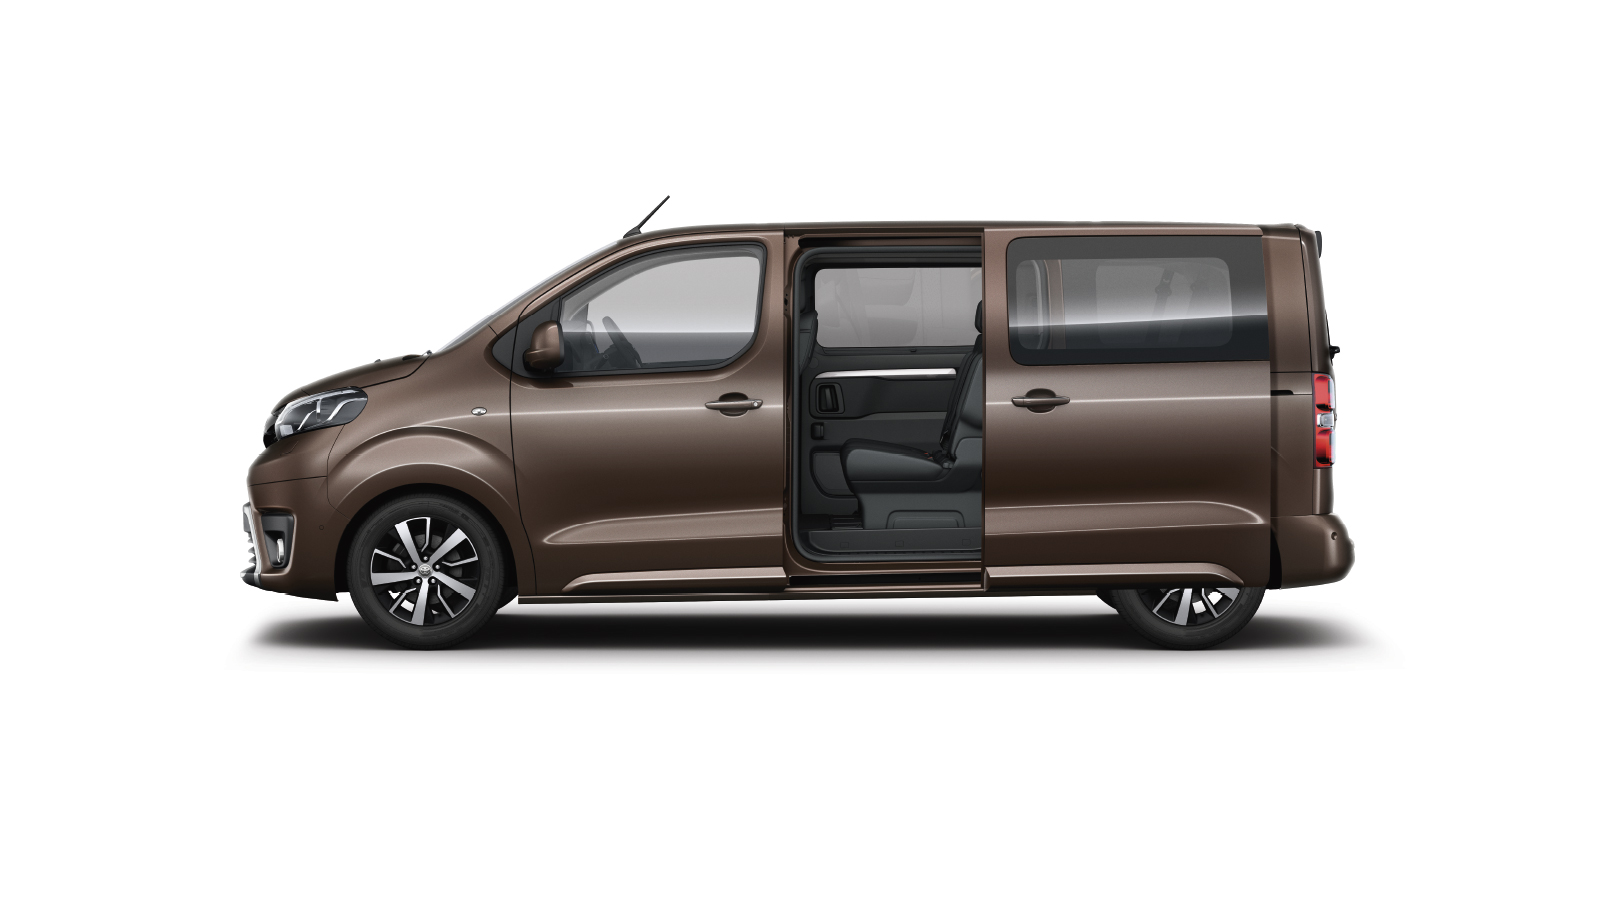 Toyota Proace Verso Overview The Versatile People Carrier